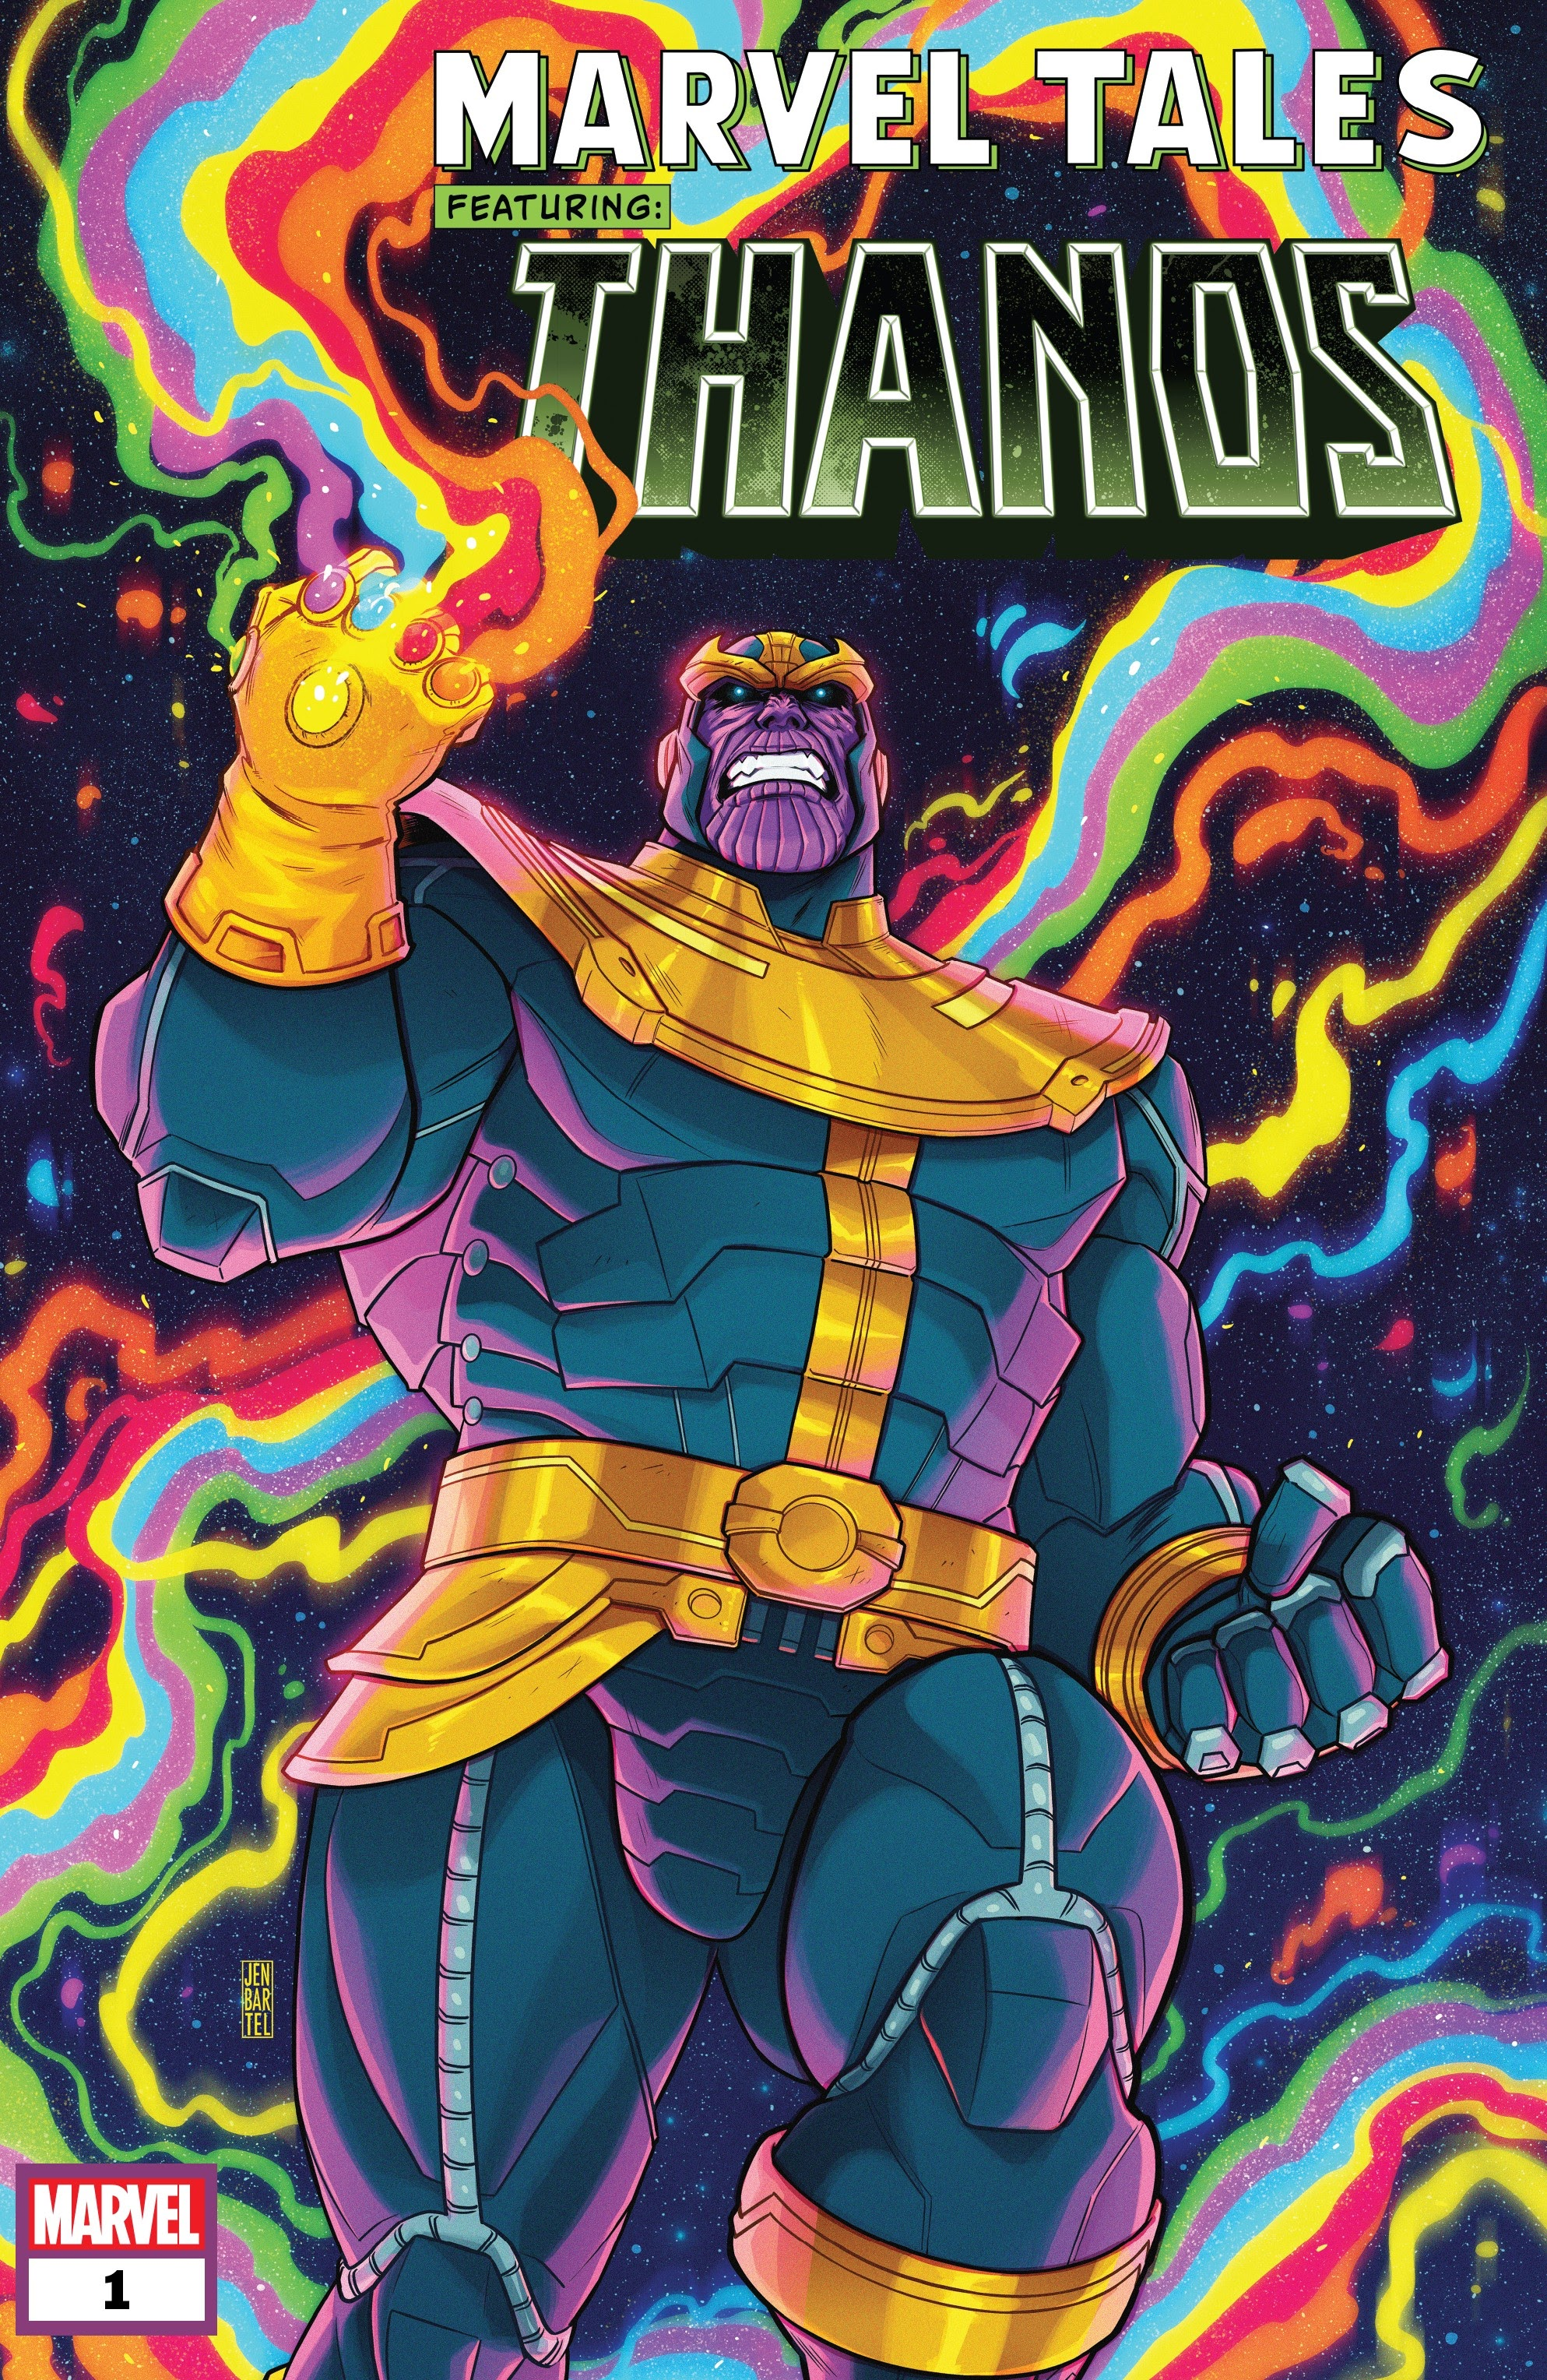 Marvel Tales: Thanos Full Page 1